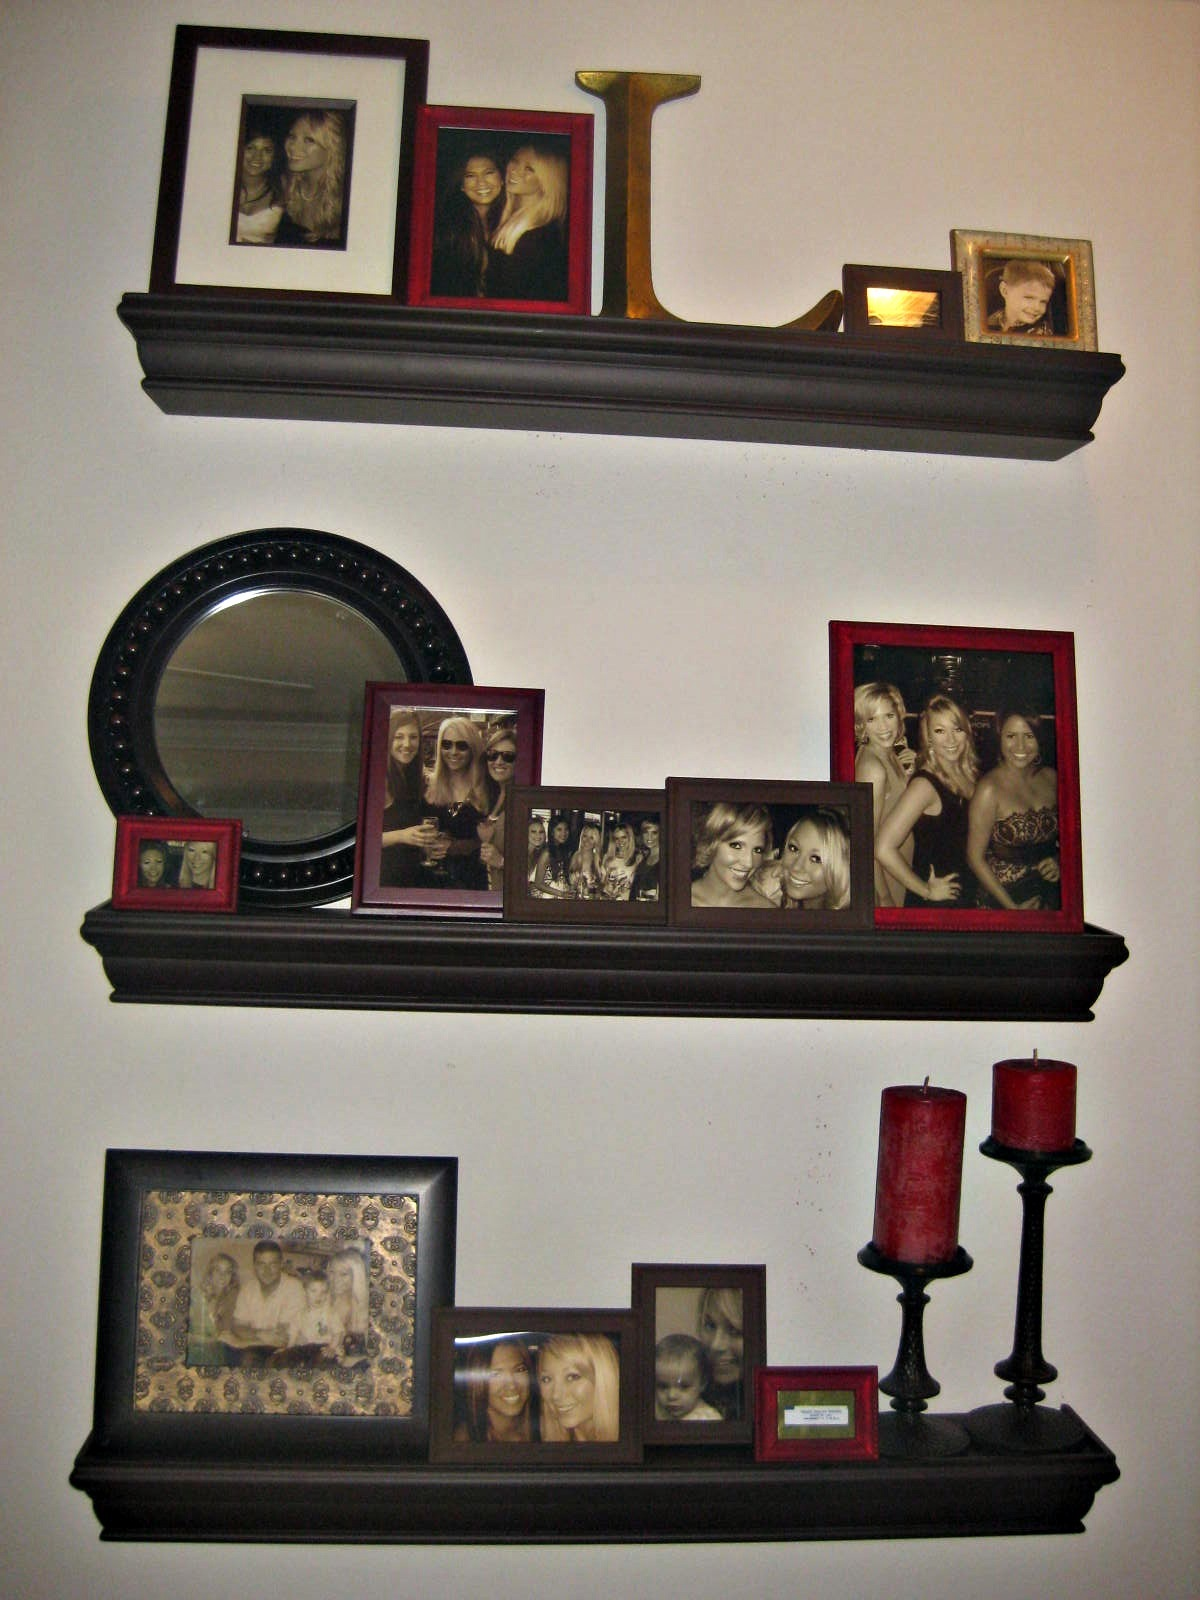 Decorating With Wall Shelves The Bargain Blonde How I Did My Quotfloating Shelves Photo Wall Quot